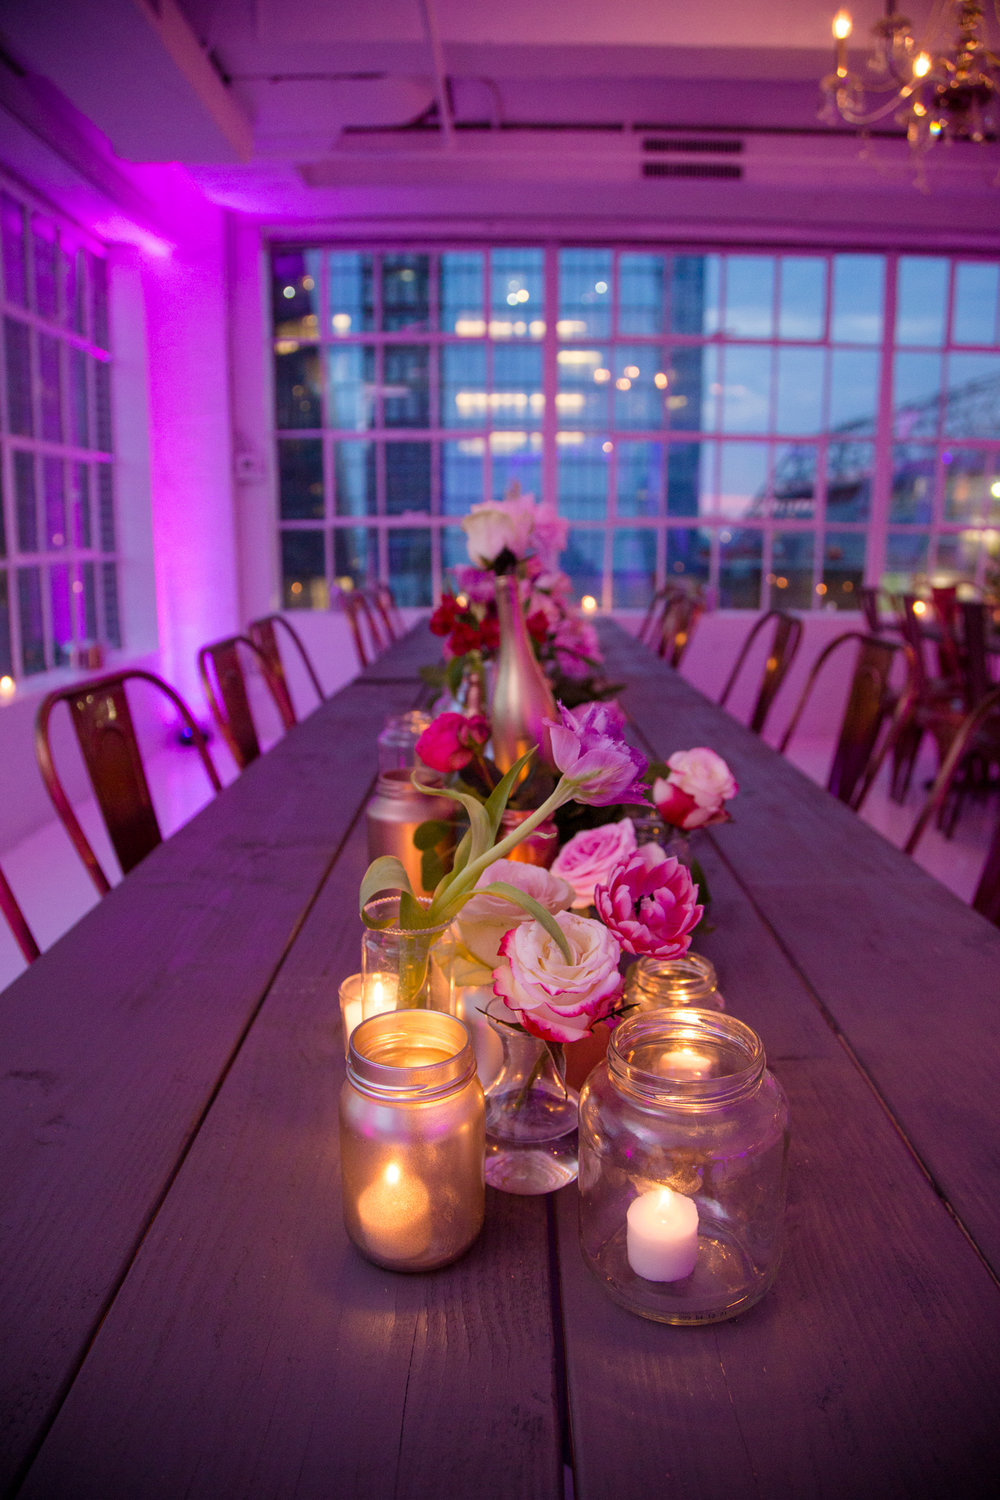 mitzvah centerpiece with flowers and candles